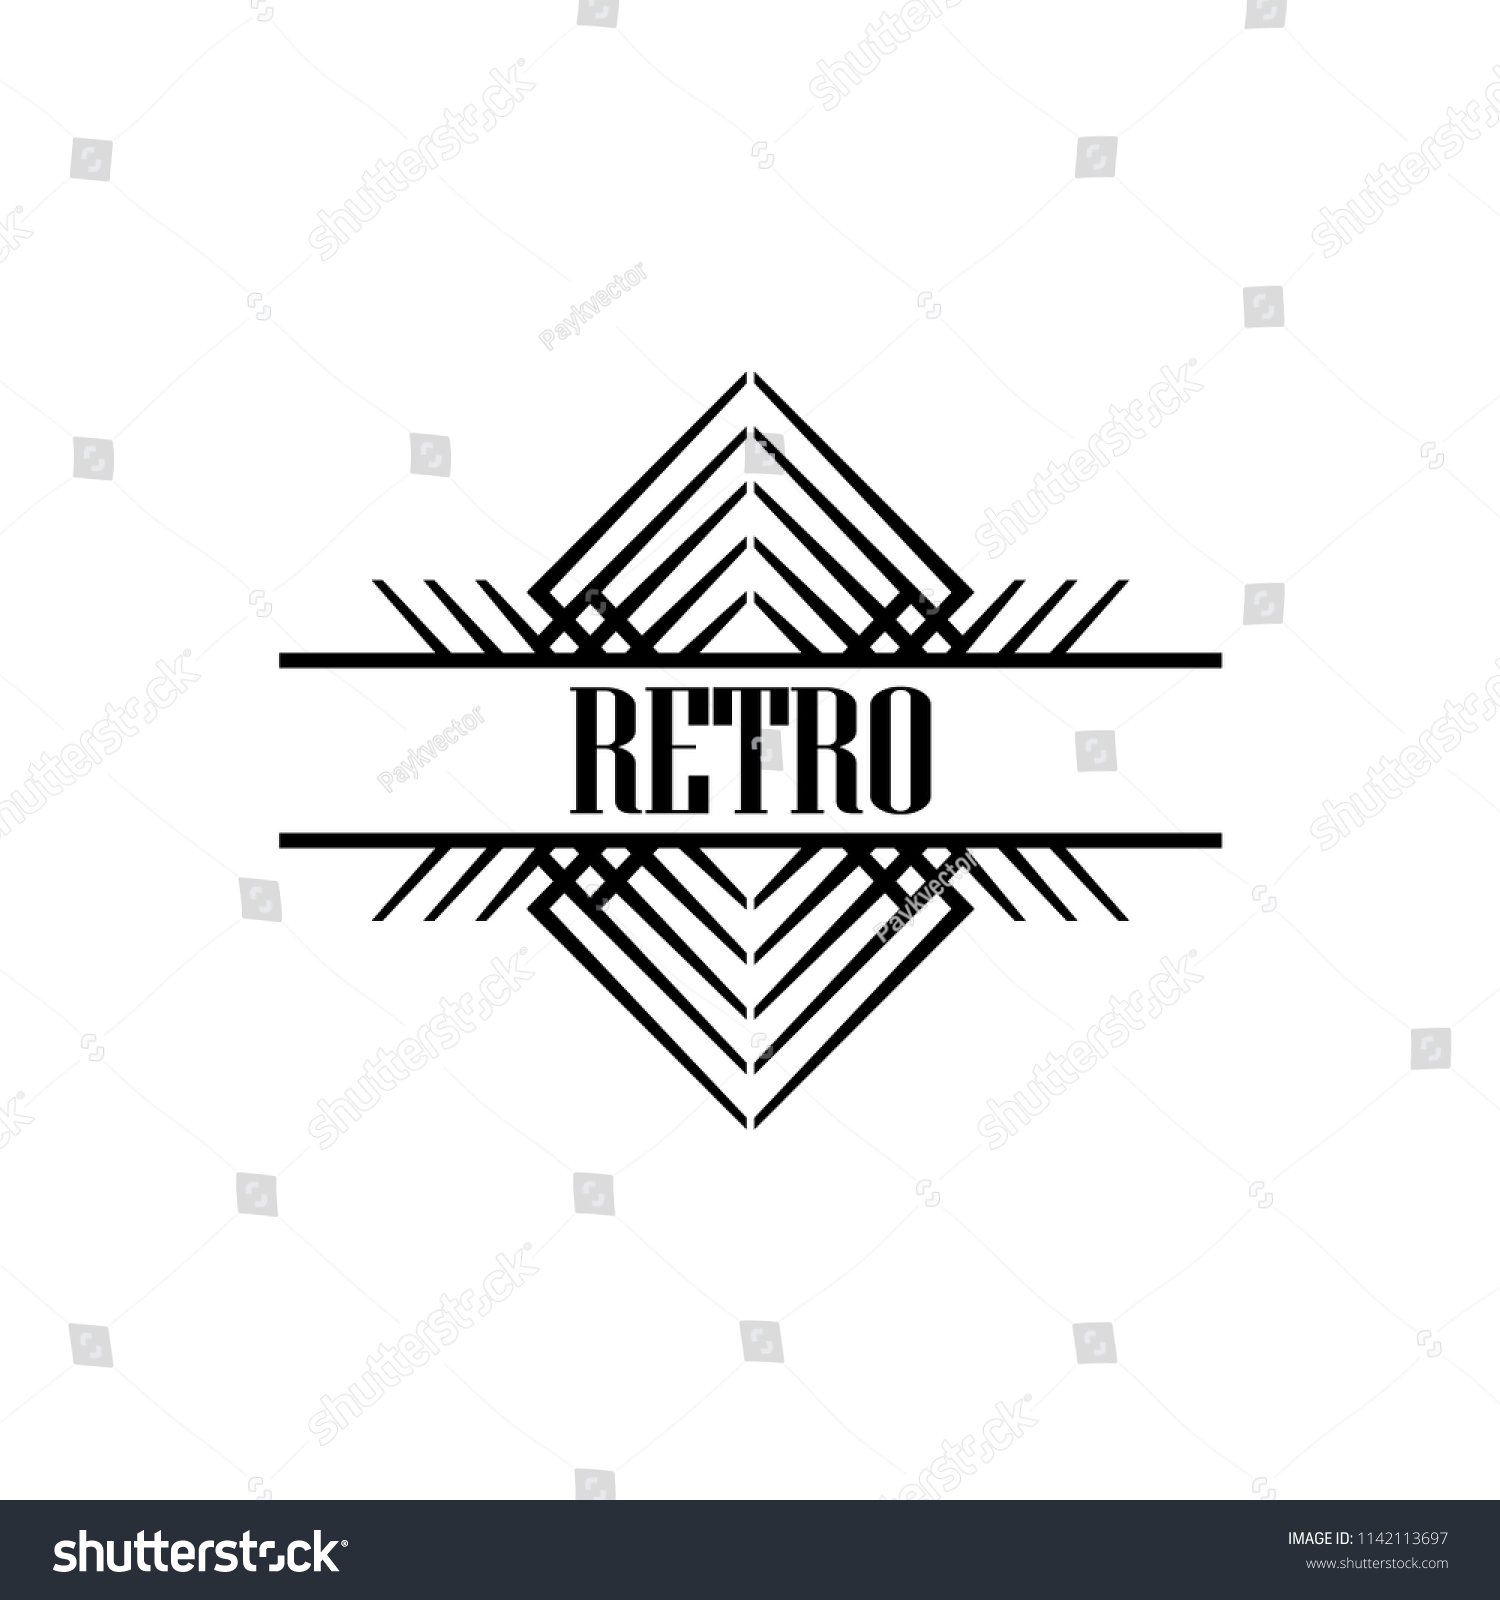 vector logo design template concept art stock vector royalty free